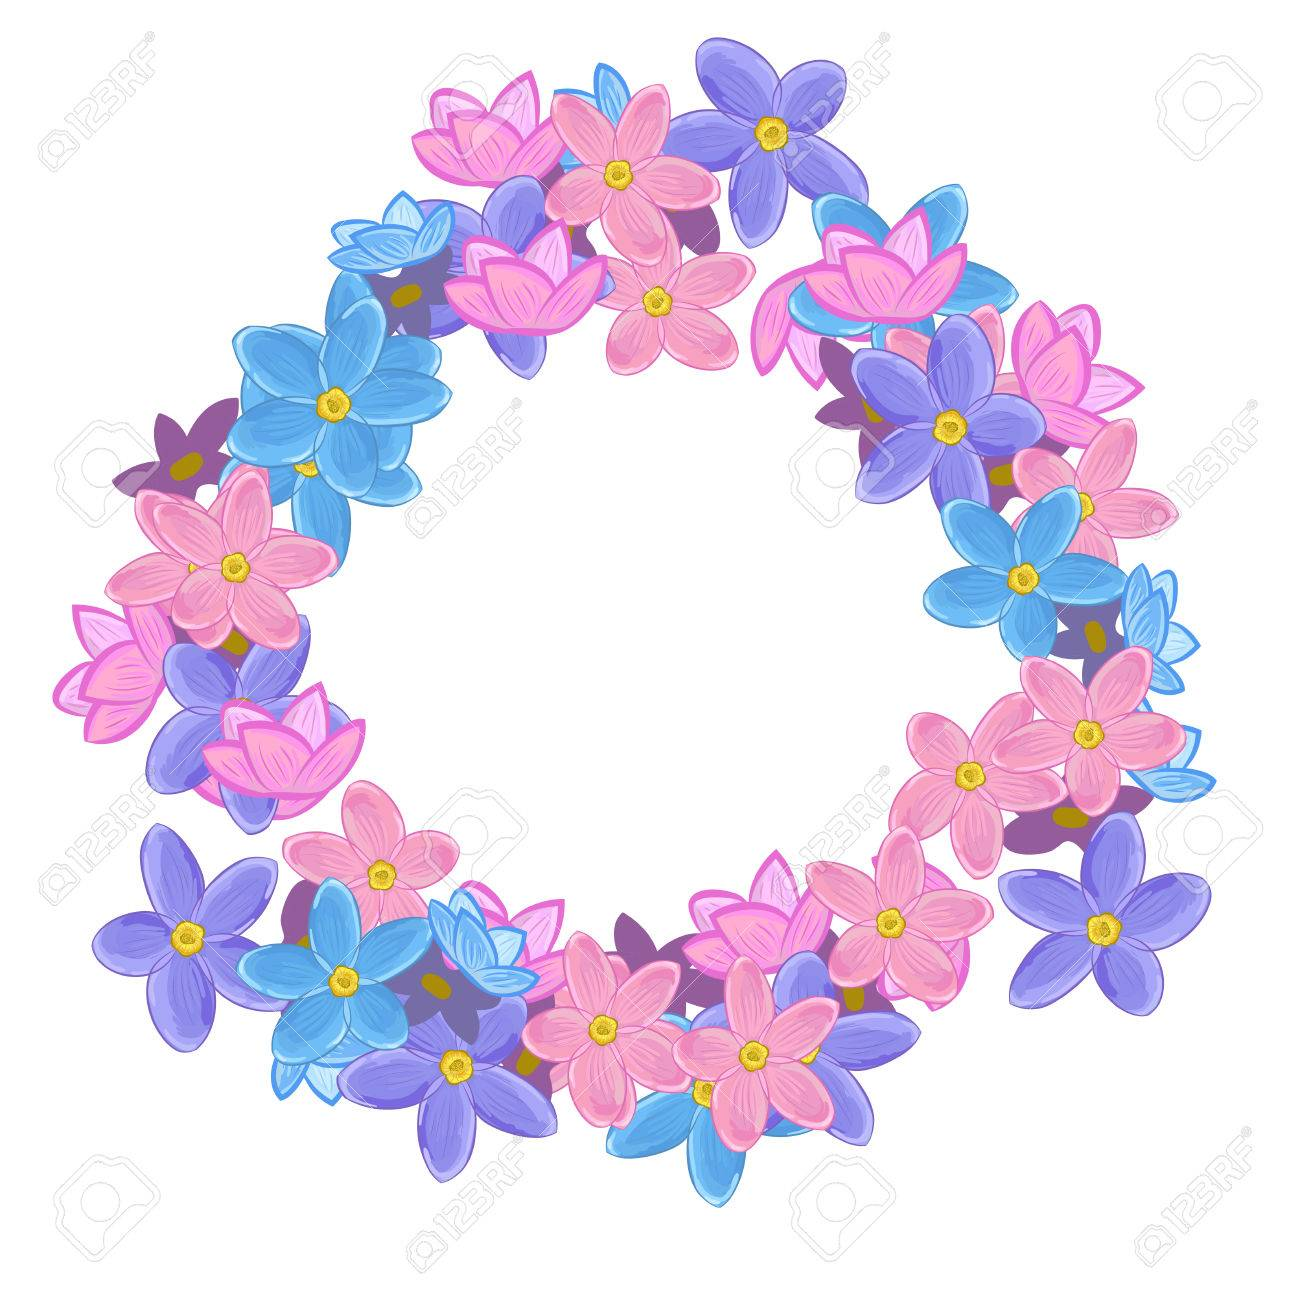 Small Pink Violet And Blue Flowers Arranged Un A Shape Of Round